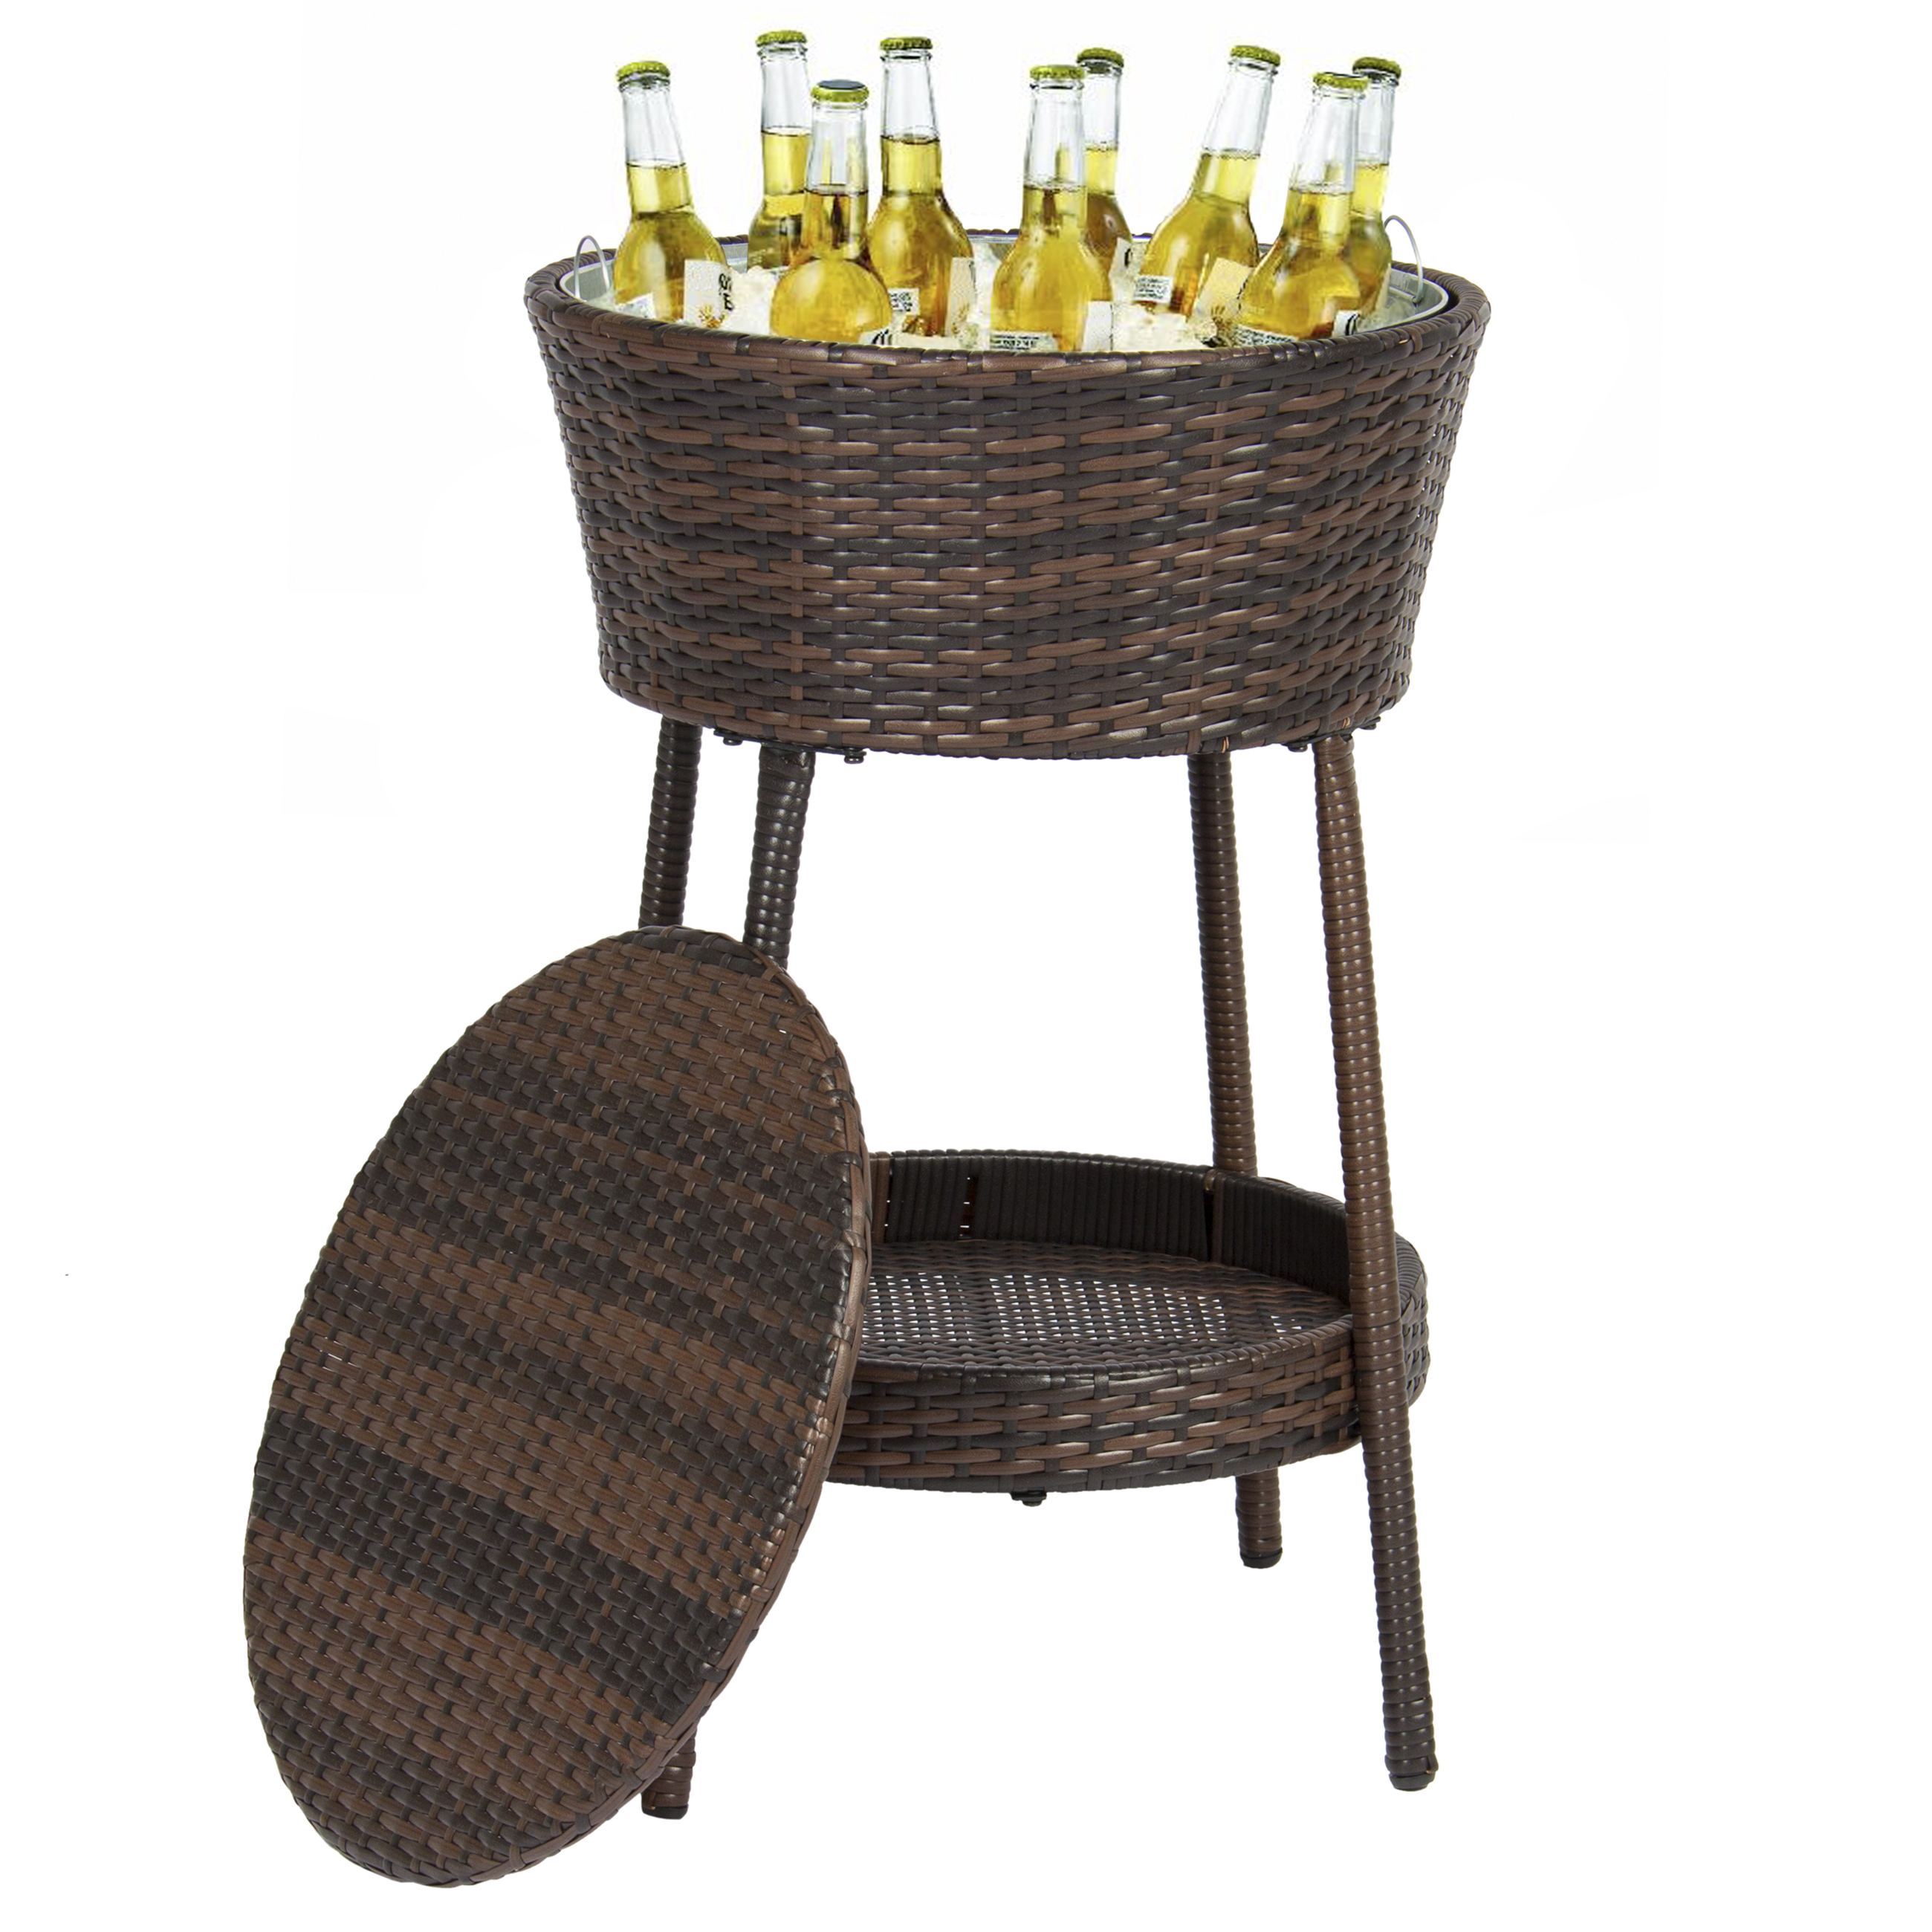 Best Choice Products Wicker Ice Bucket for Outdoor Patio w/ Tray, Removable Cover Patio Furniture - Brown